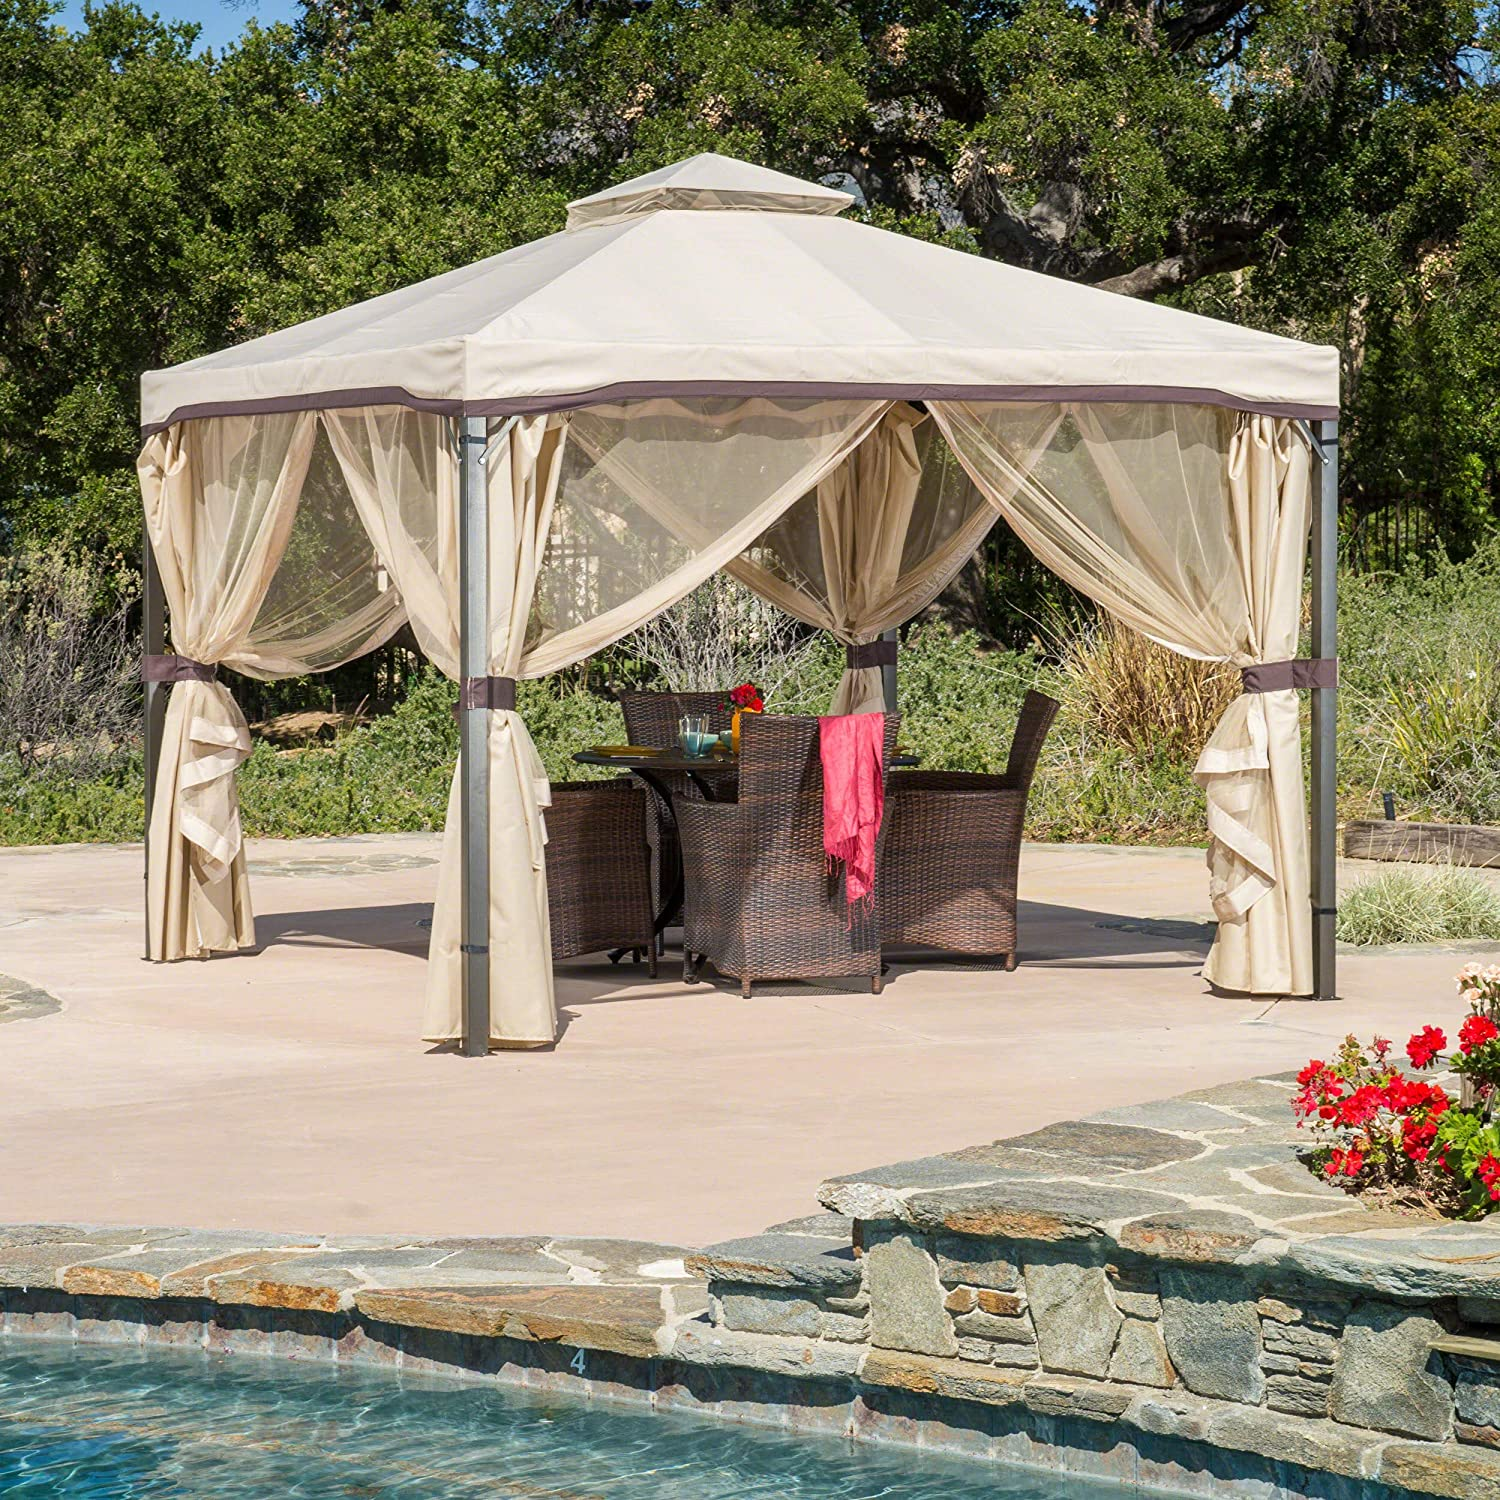 Title Sonoma Gazebo Canopy, Outdoor Furniture Tent with Shade Curtains for Patio or Deck